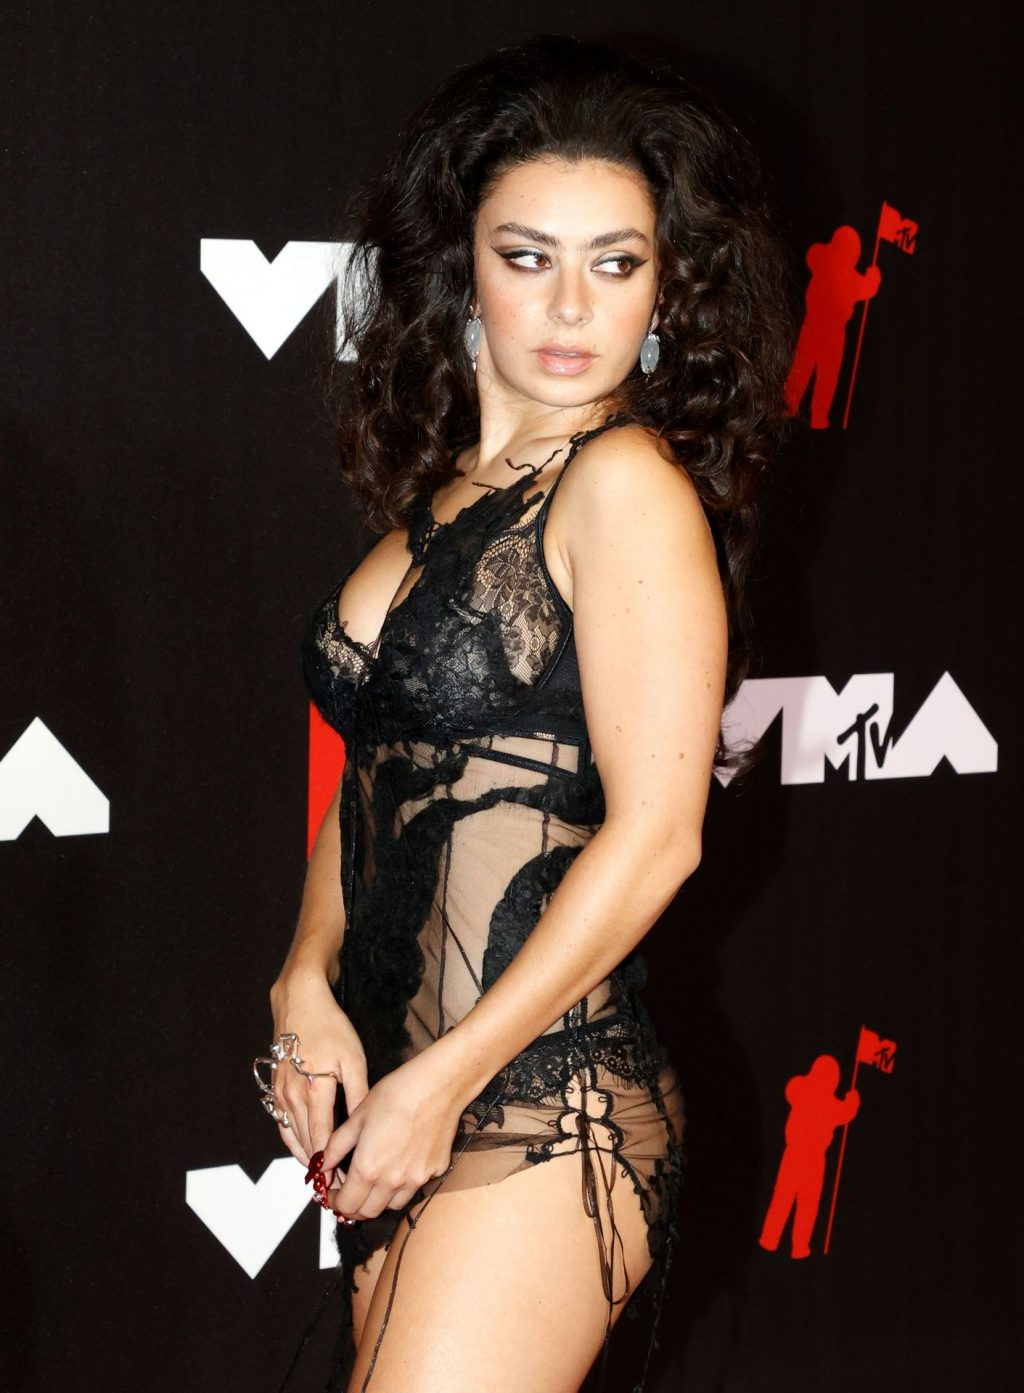 Charli XCX Flaunts Her Sexy Legs and Butt at the 2021 MTV Video Music Awards (12 Photos)